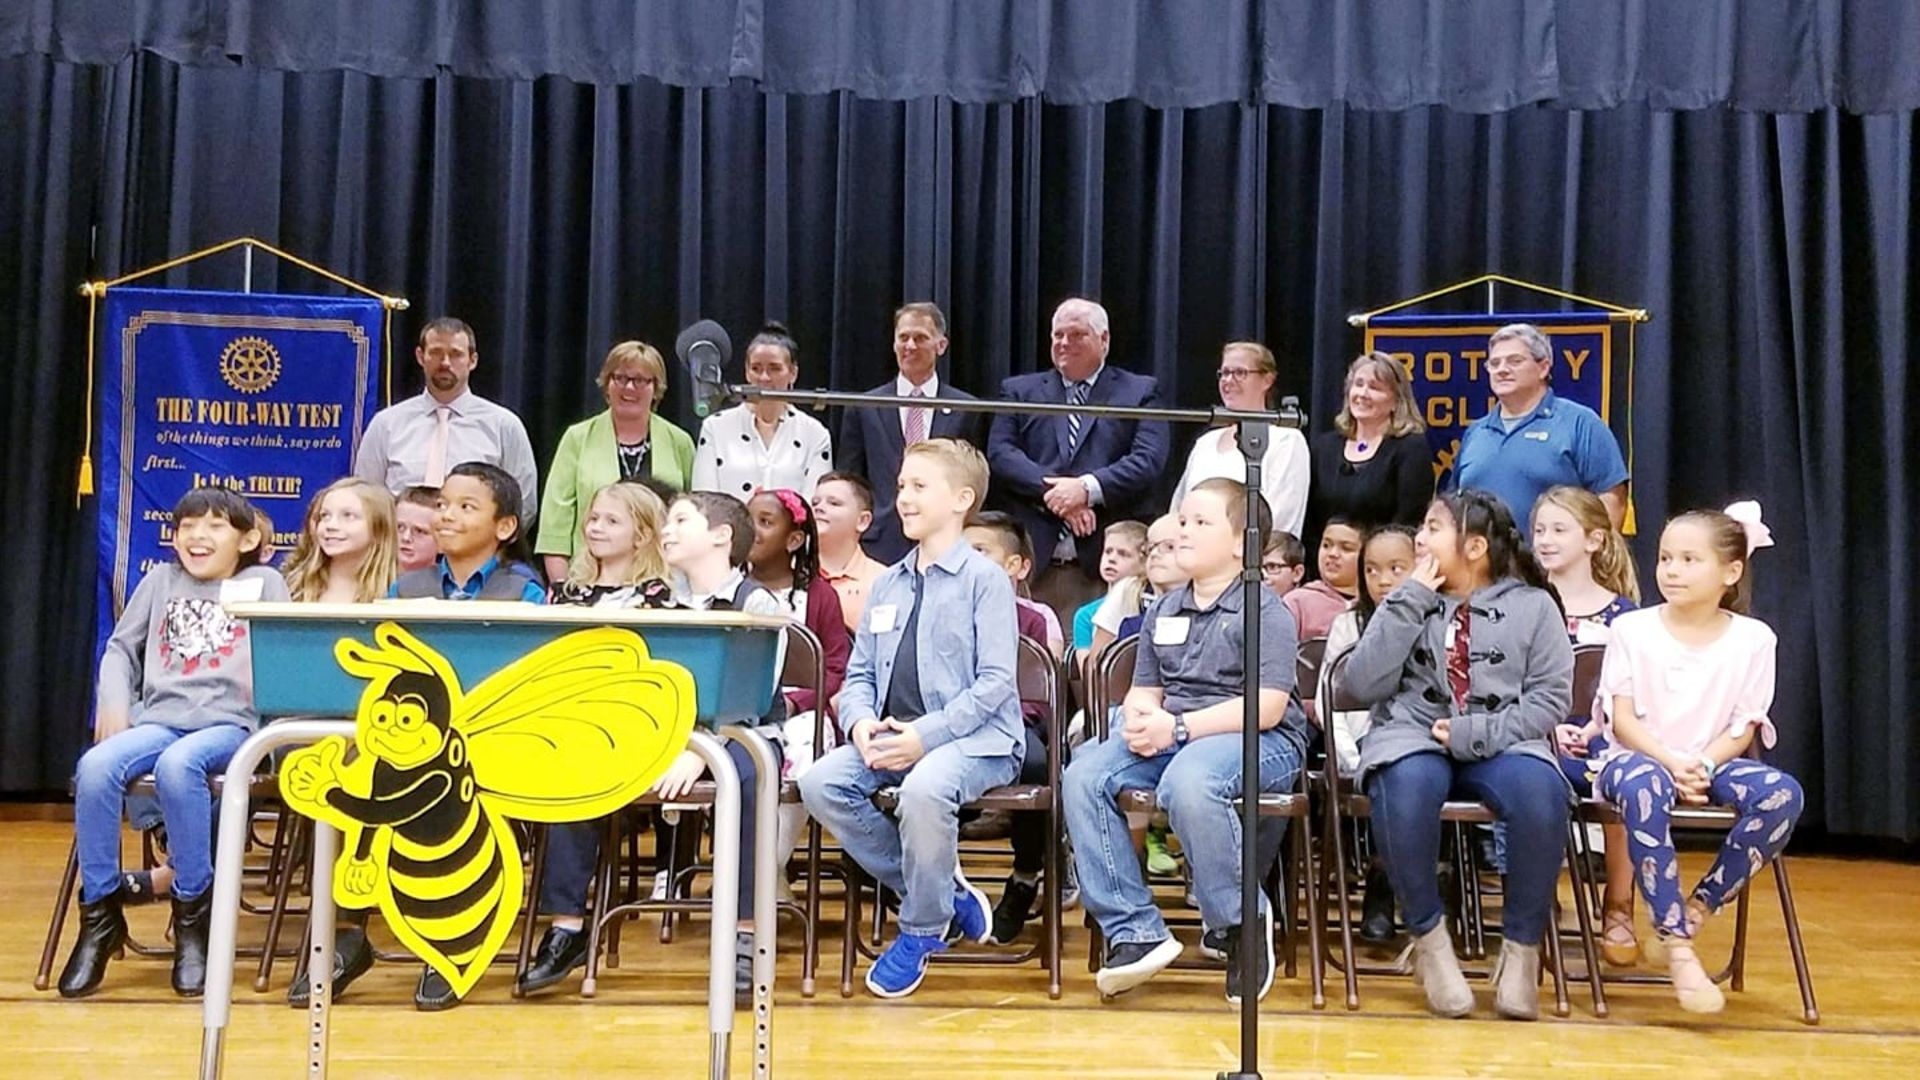 Brendan Crotty – Southern Sussex Rotary literacy chair ran the Spelling Bee